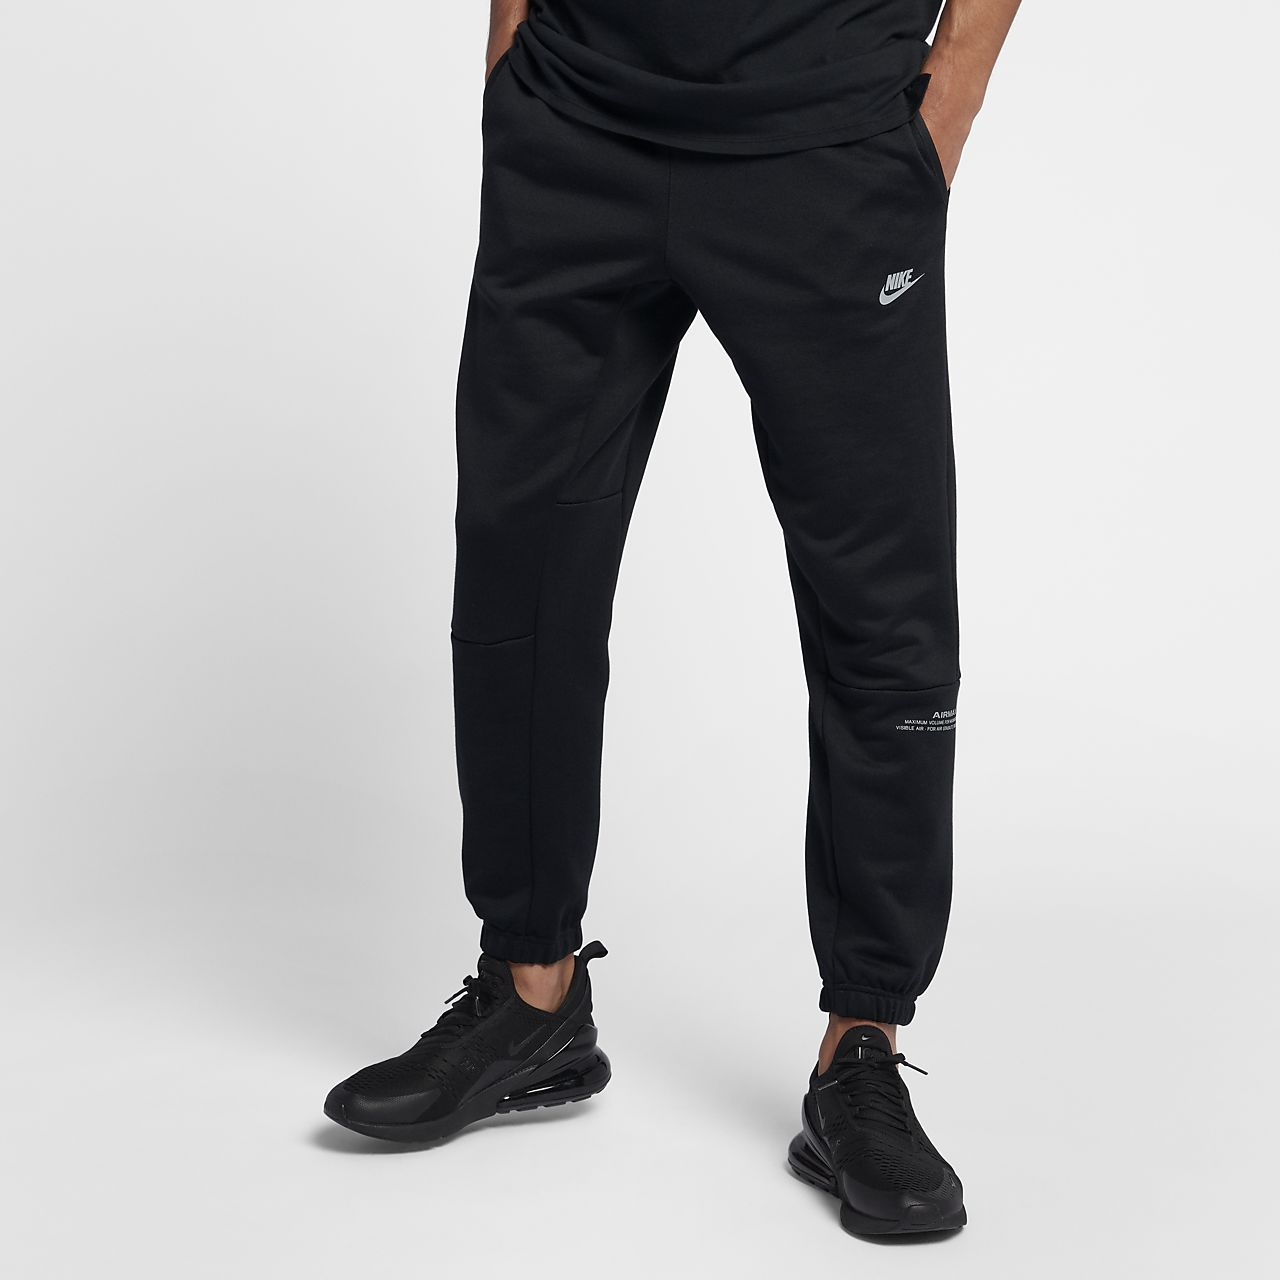 Air Max De Sportswear Pantalon Nike Be Jogging Pour A71uuqa Homme tRYqwUOO